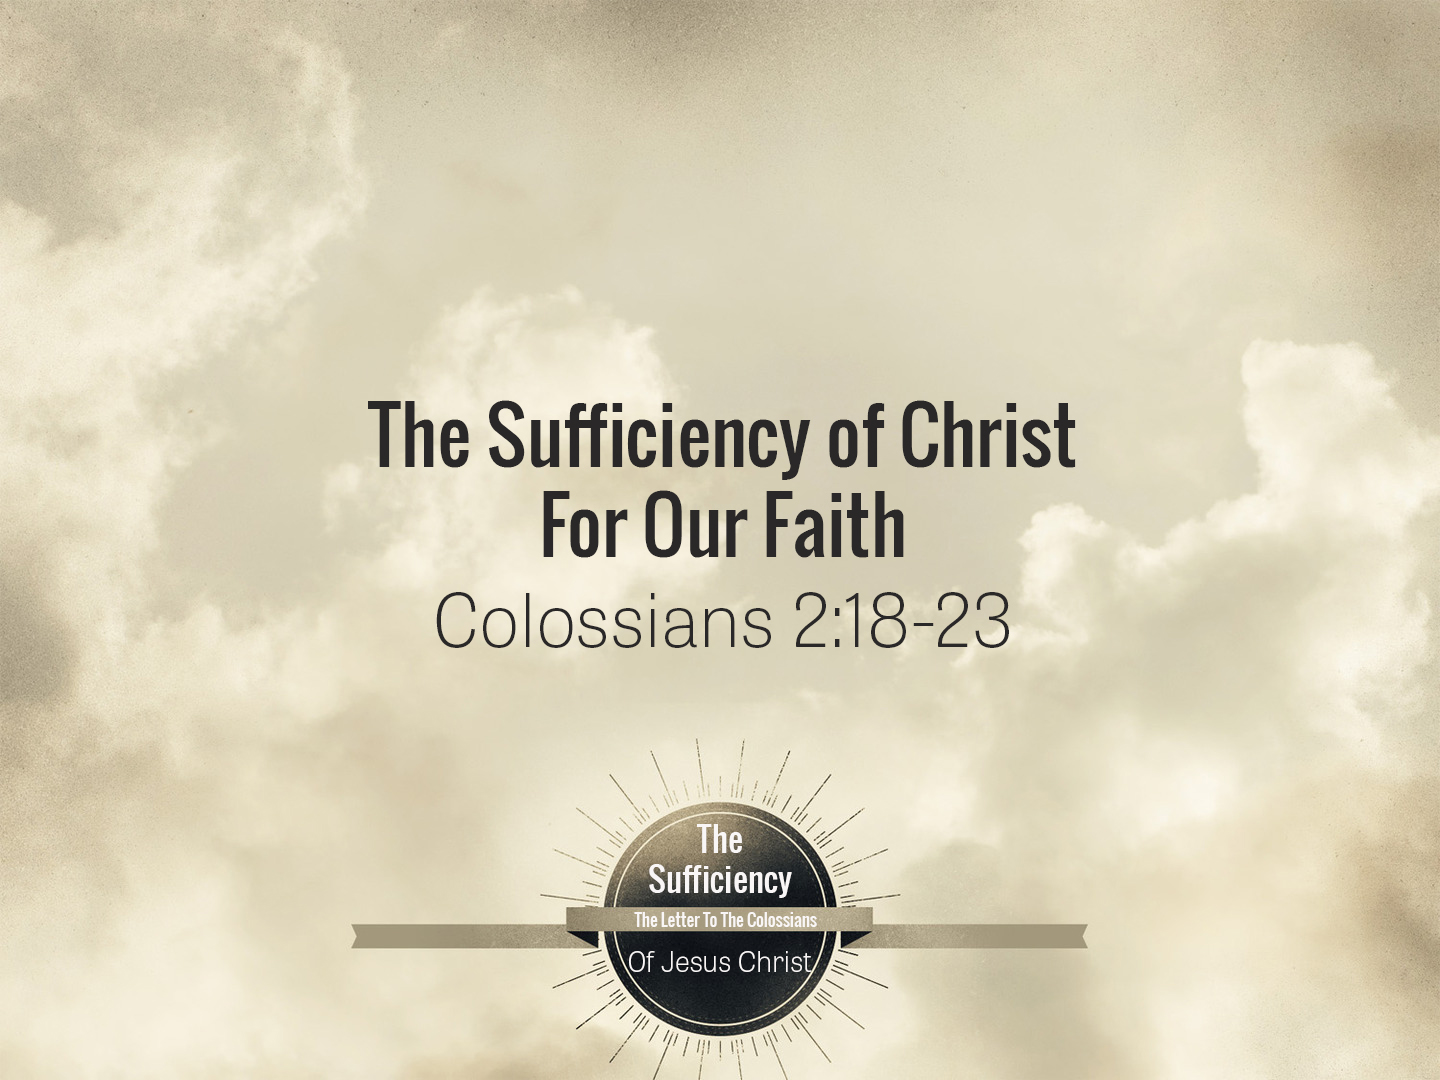 Colossians 2v18-25 The Sufficiency Of Christ For Our Faith